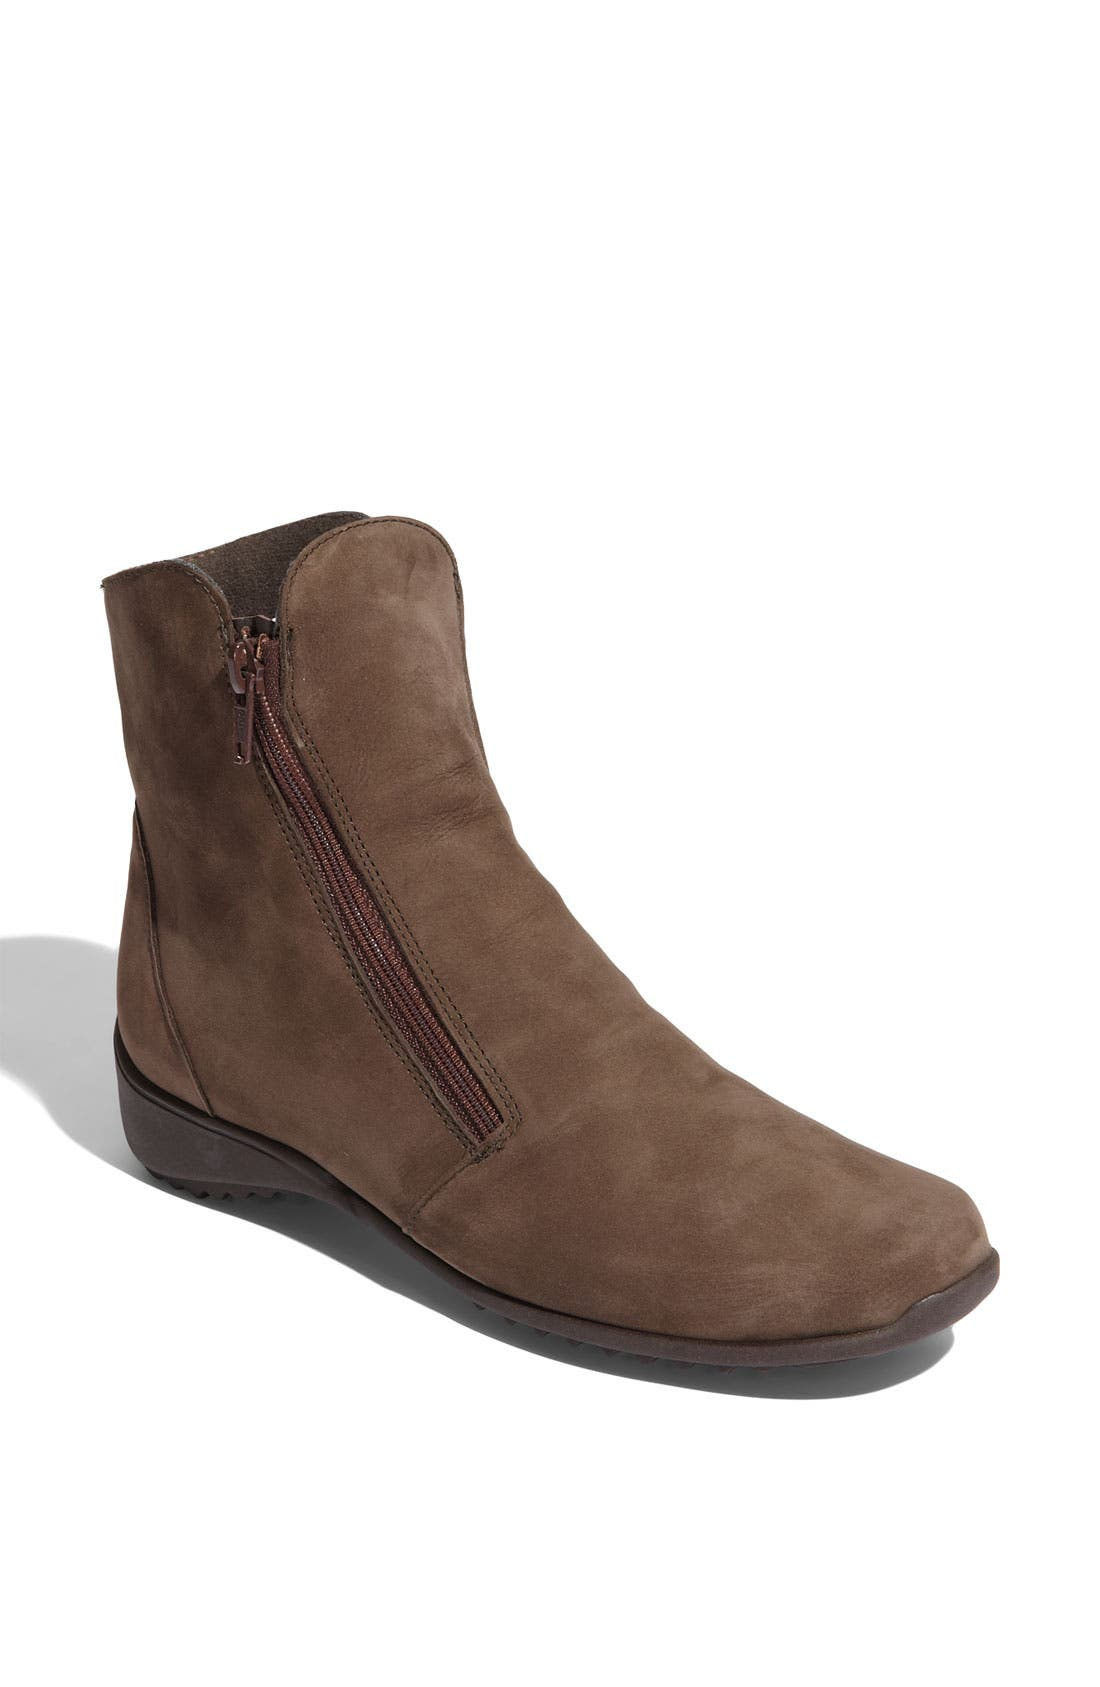 Main Image - Munro 'Drifter' Boot (Special Purchase)